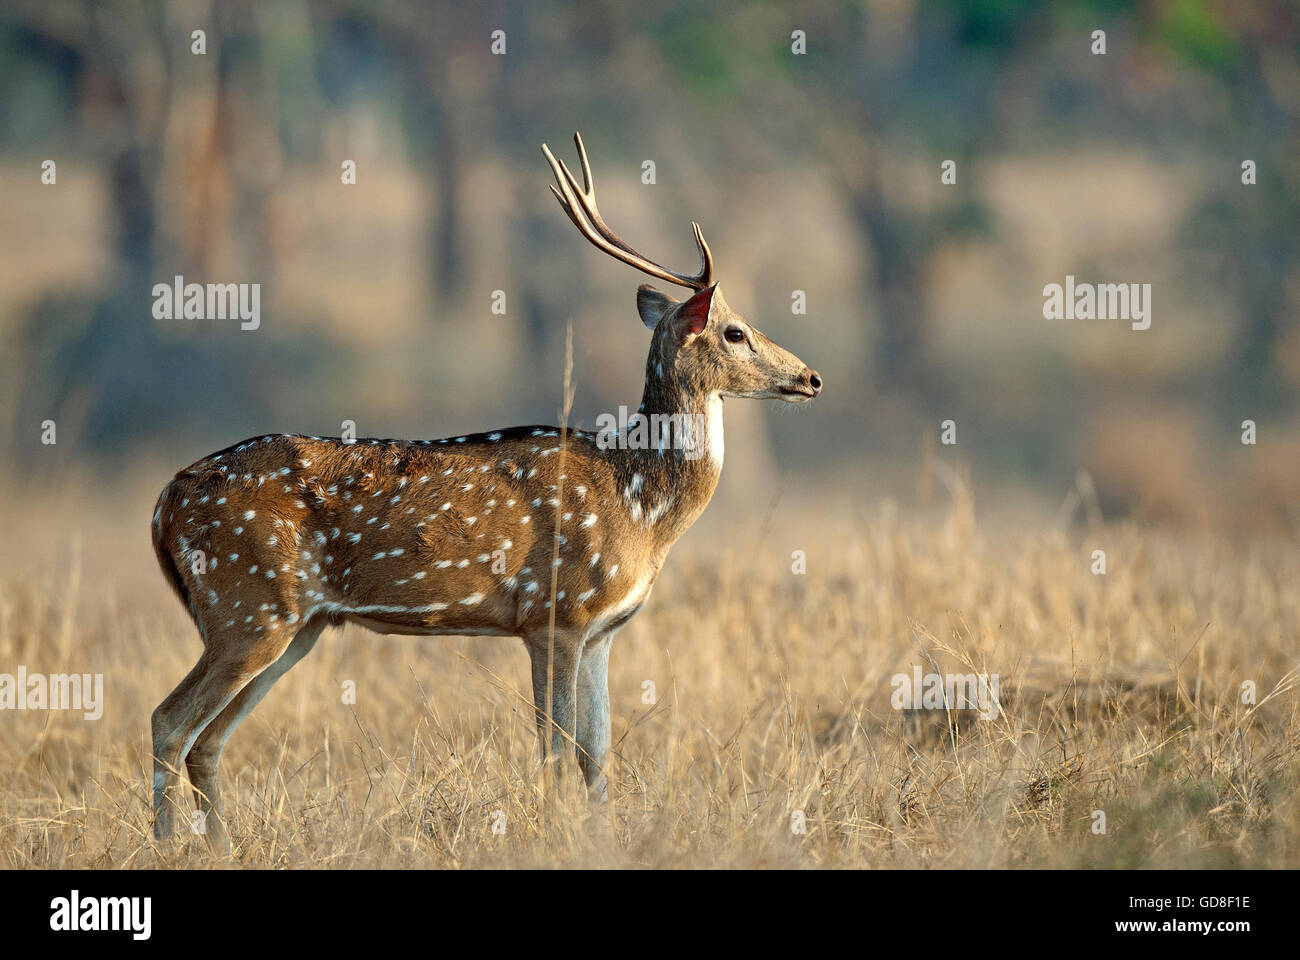 The image of Spotted deer ( Axis axis ) was taken in Bandavgarh national park, India - Stock Image